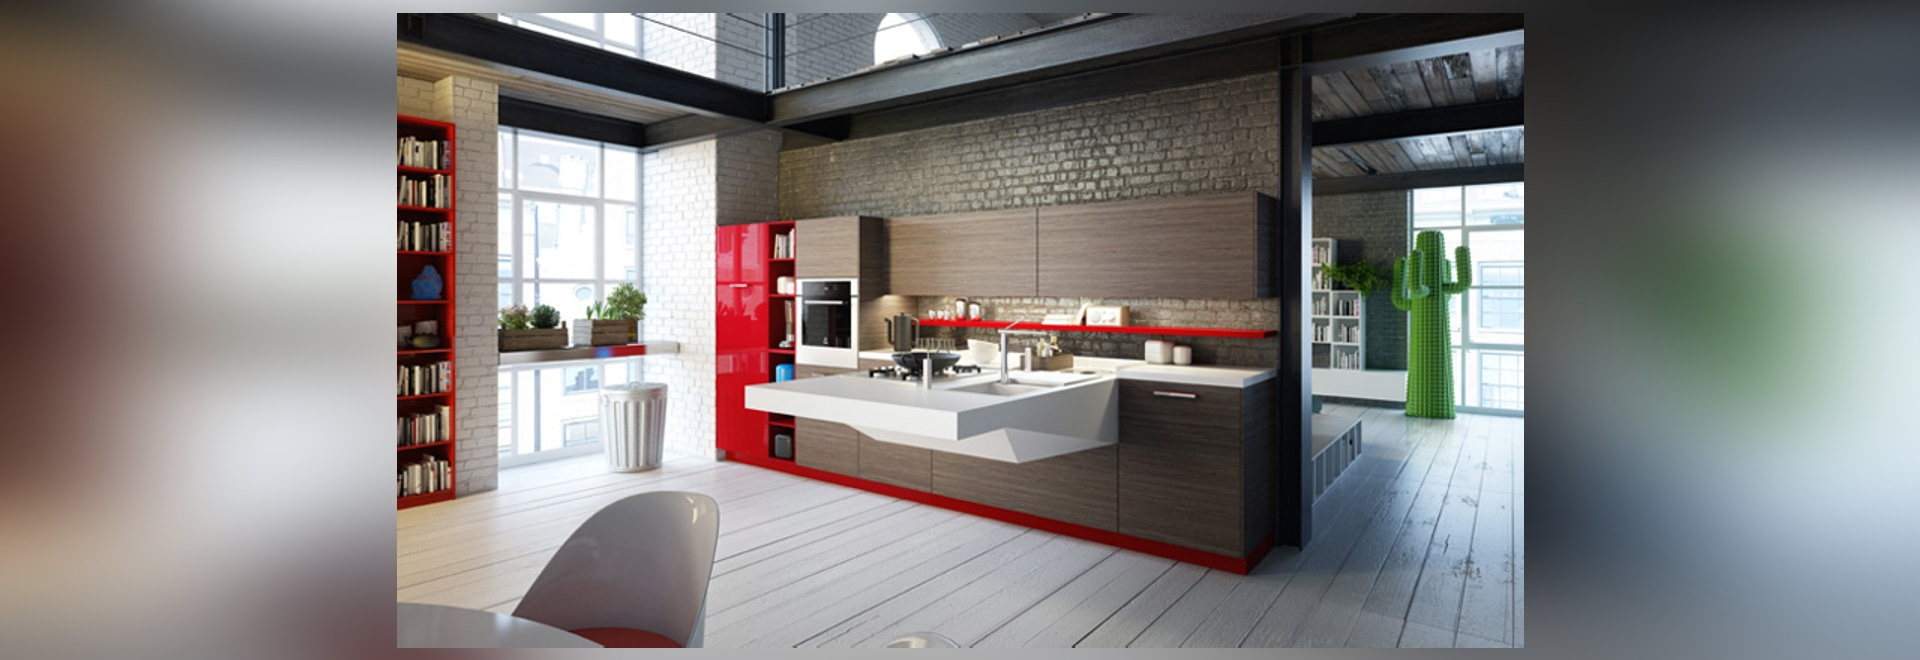 BOARD KITCHEN CANTILEVER